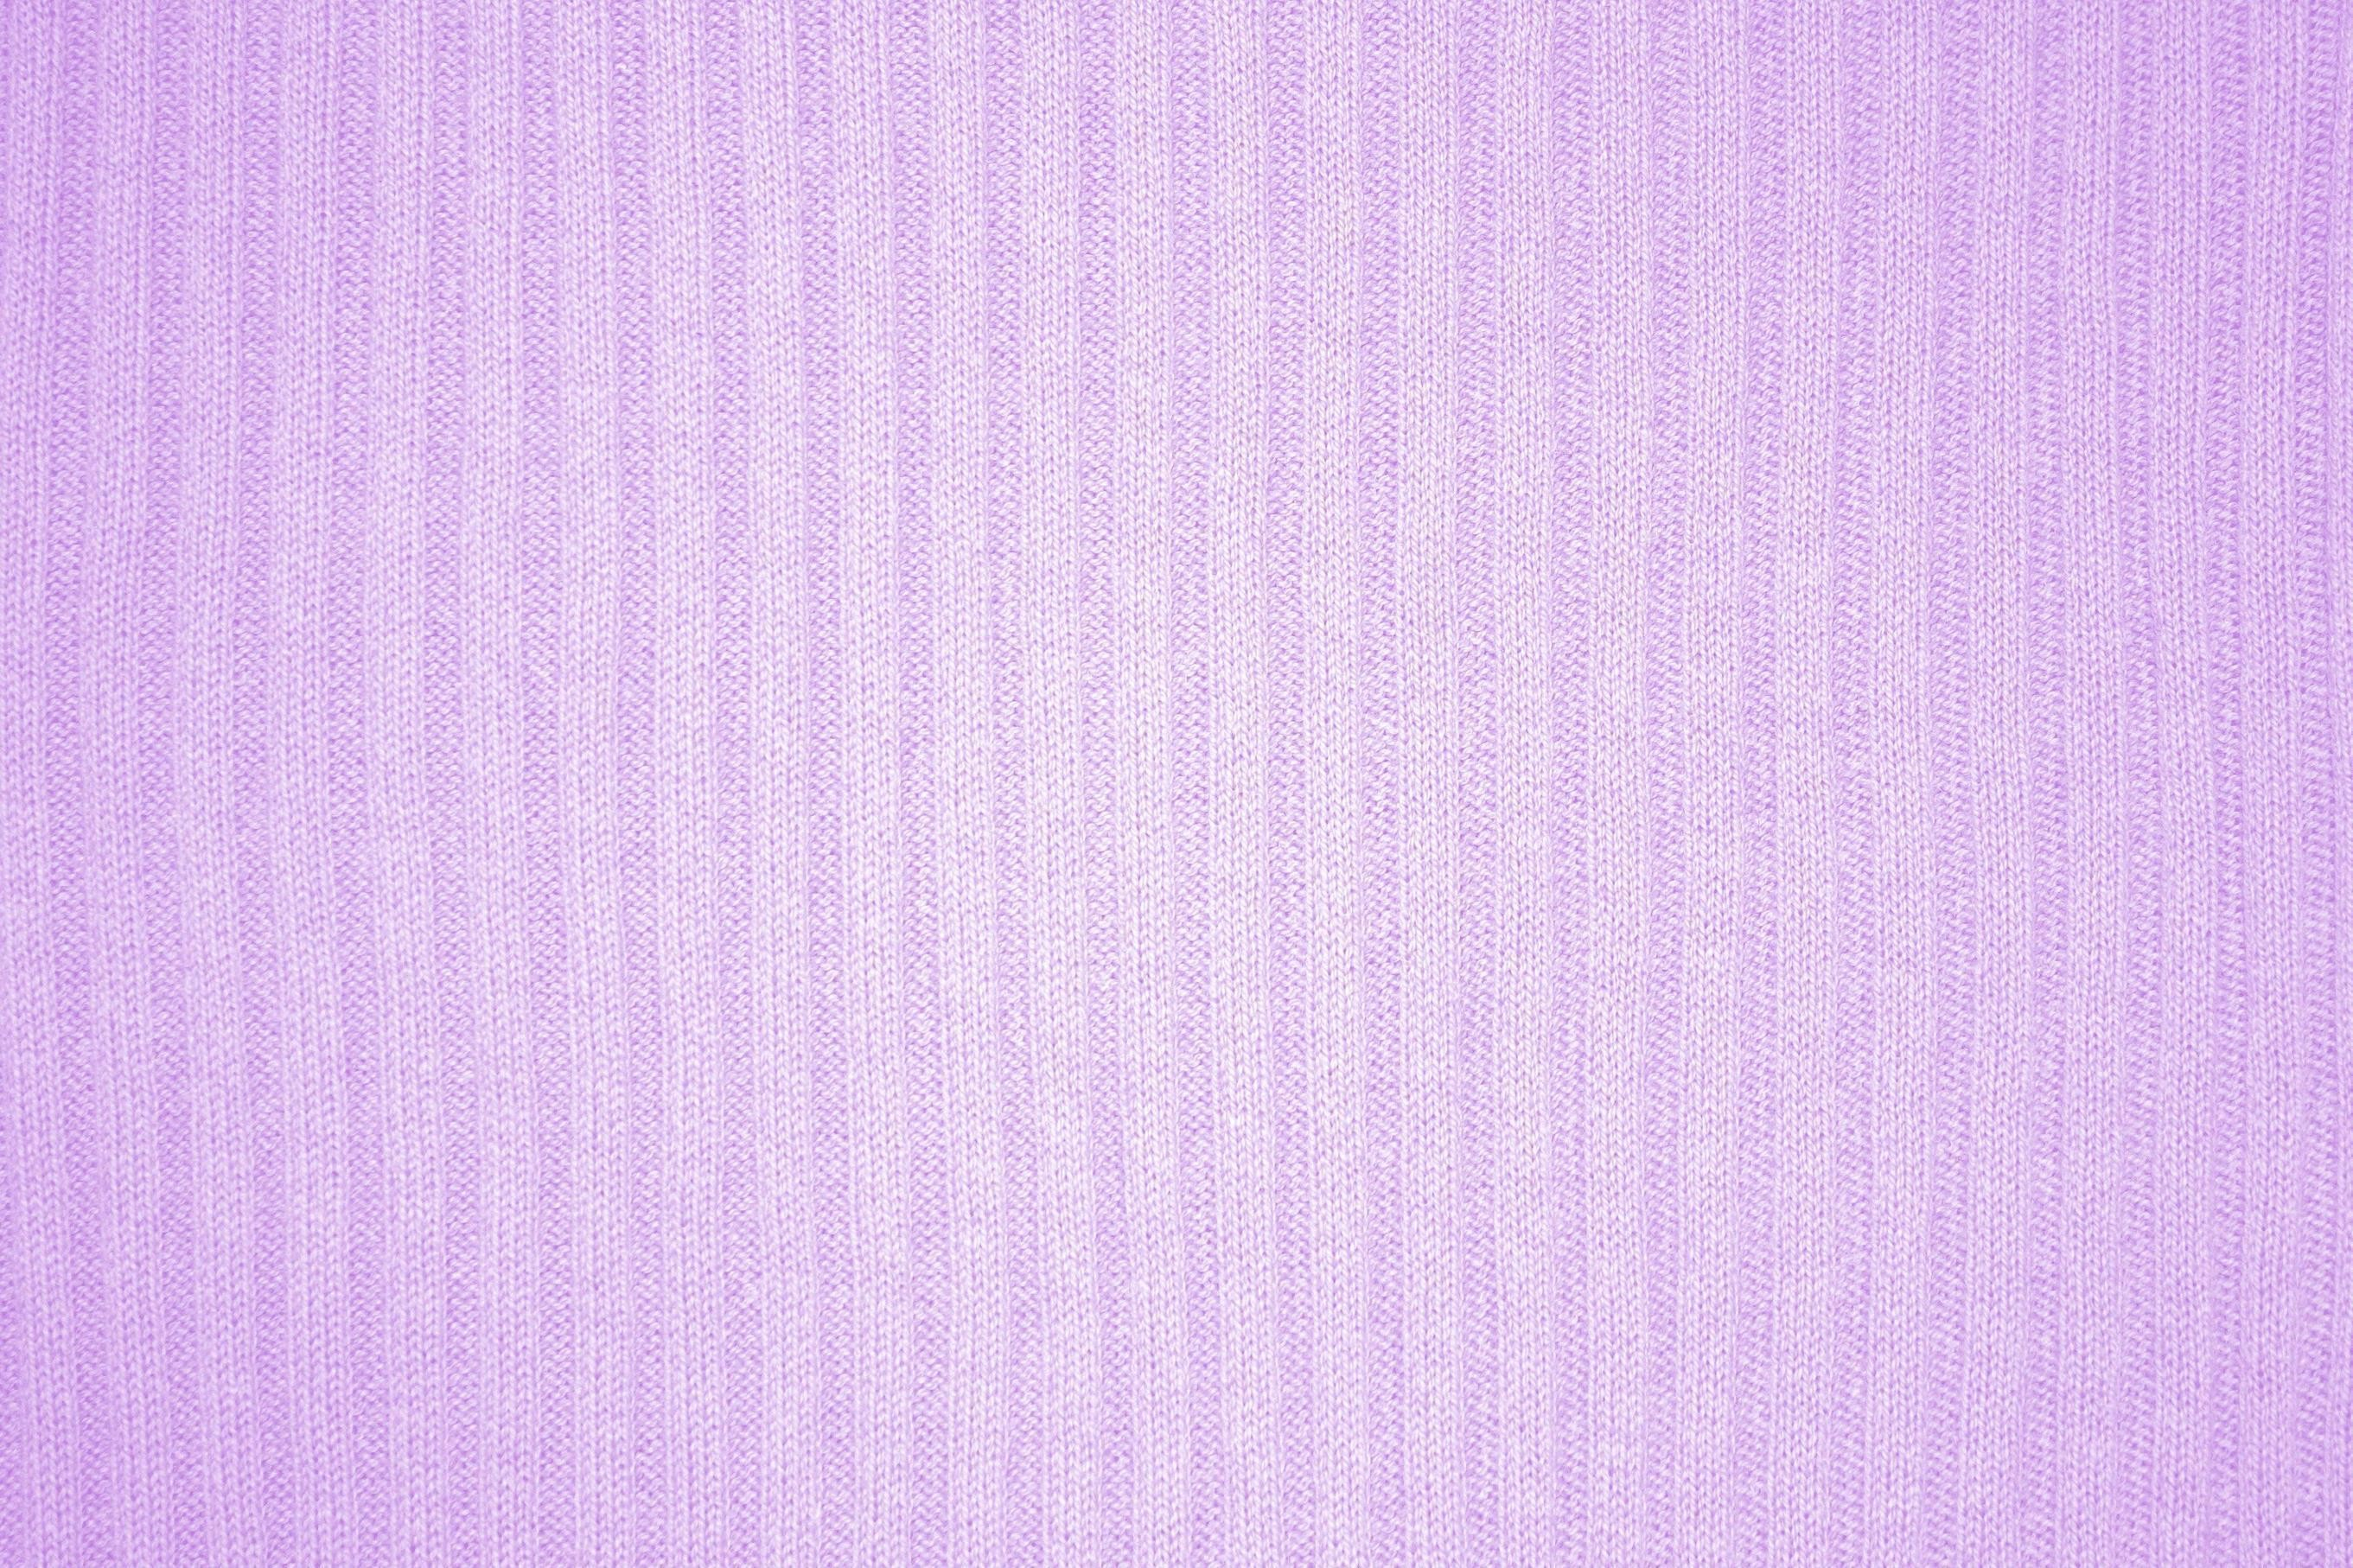 Simple Light Purple Backgrounds Hd Widescreen 10 HD Wallpapers .